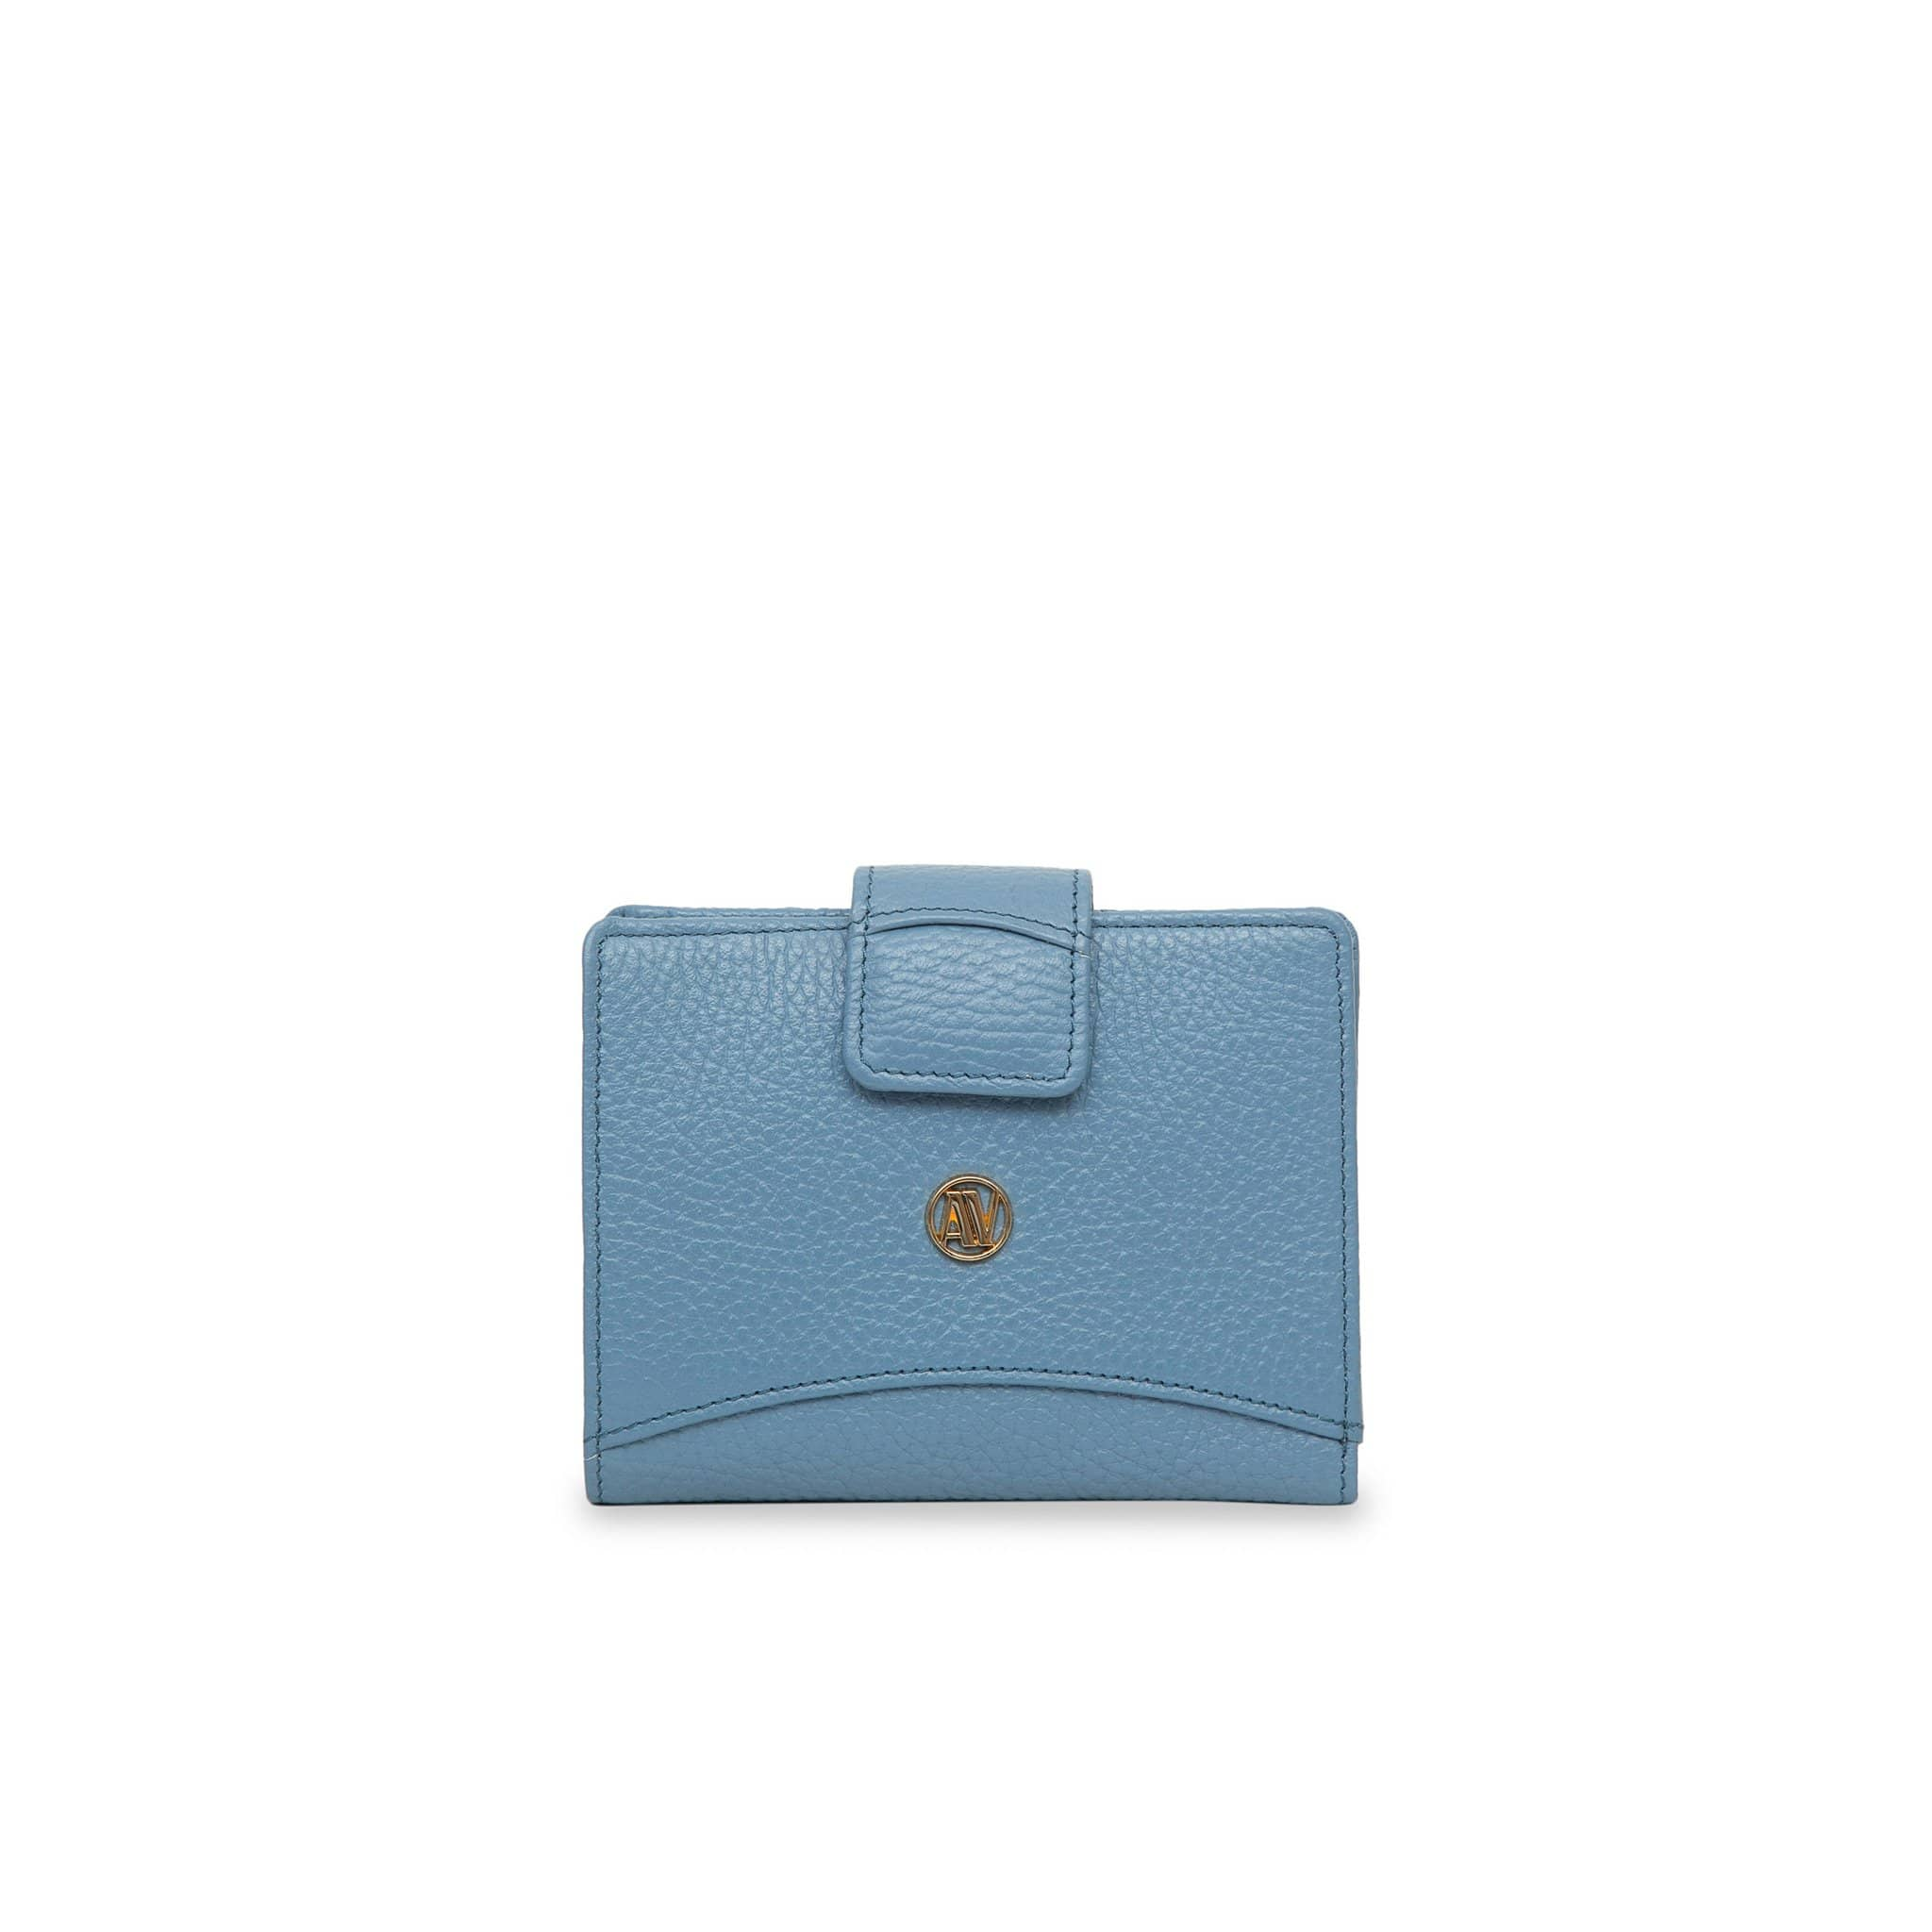 Powder small Rimini leather wallet